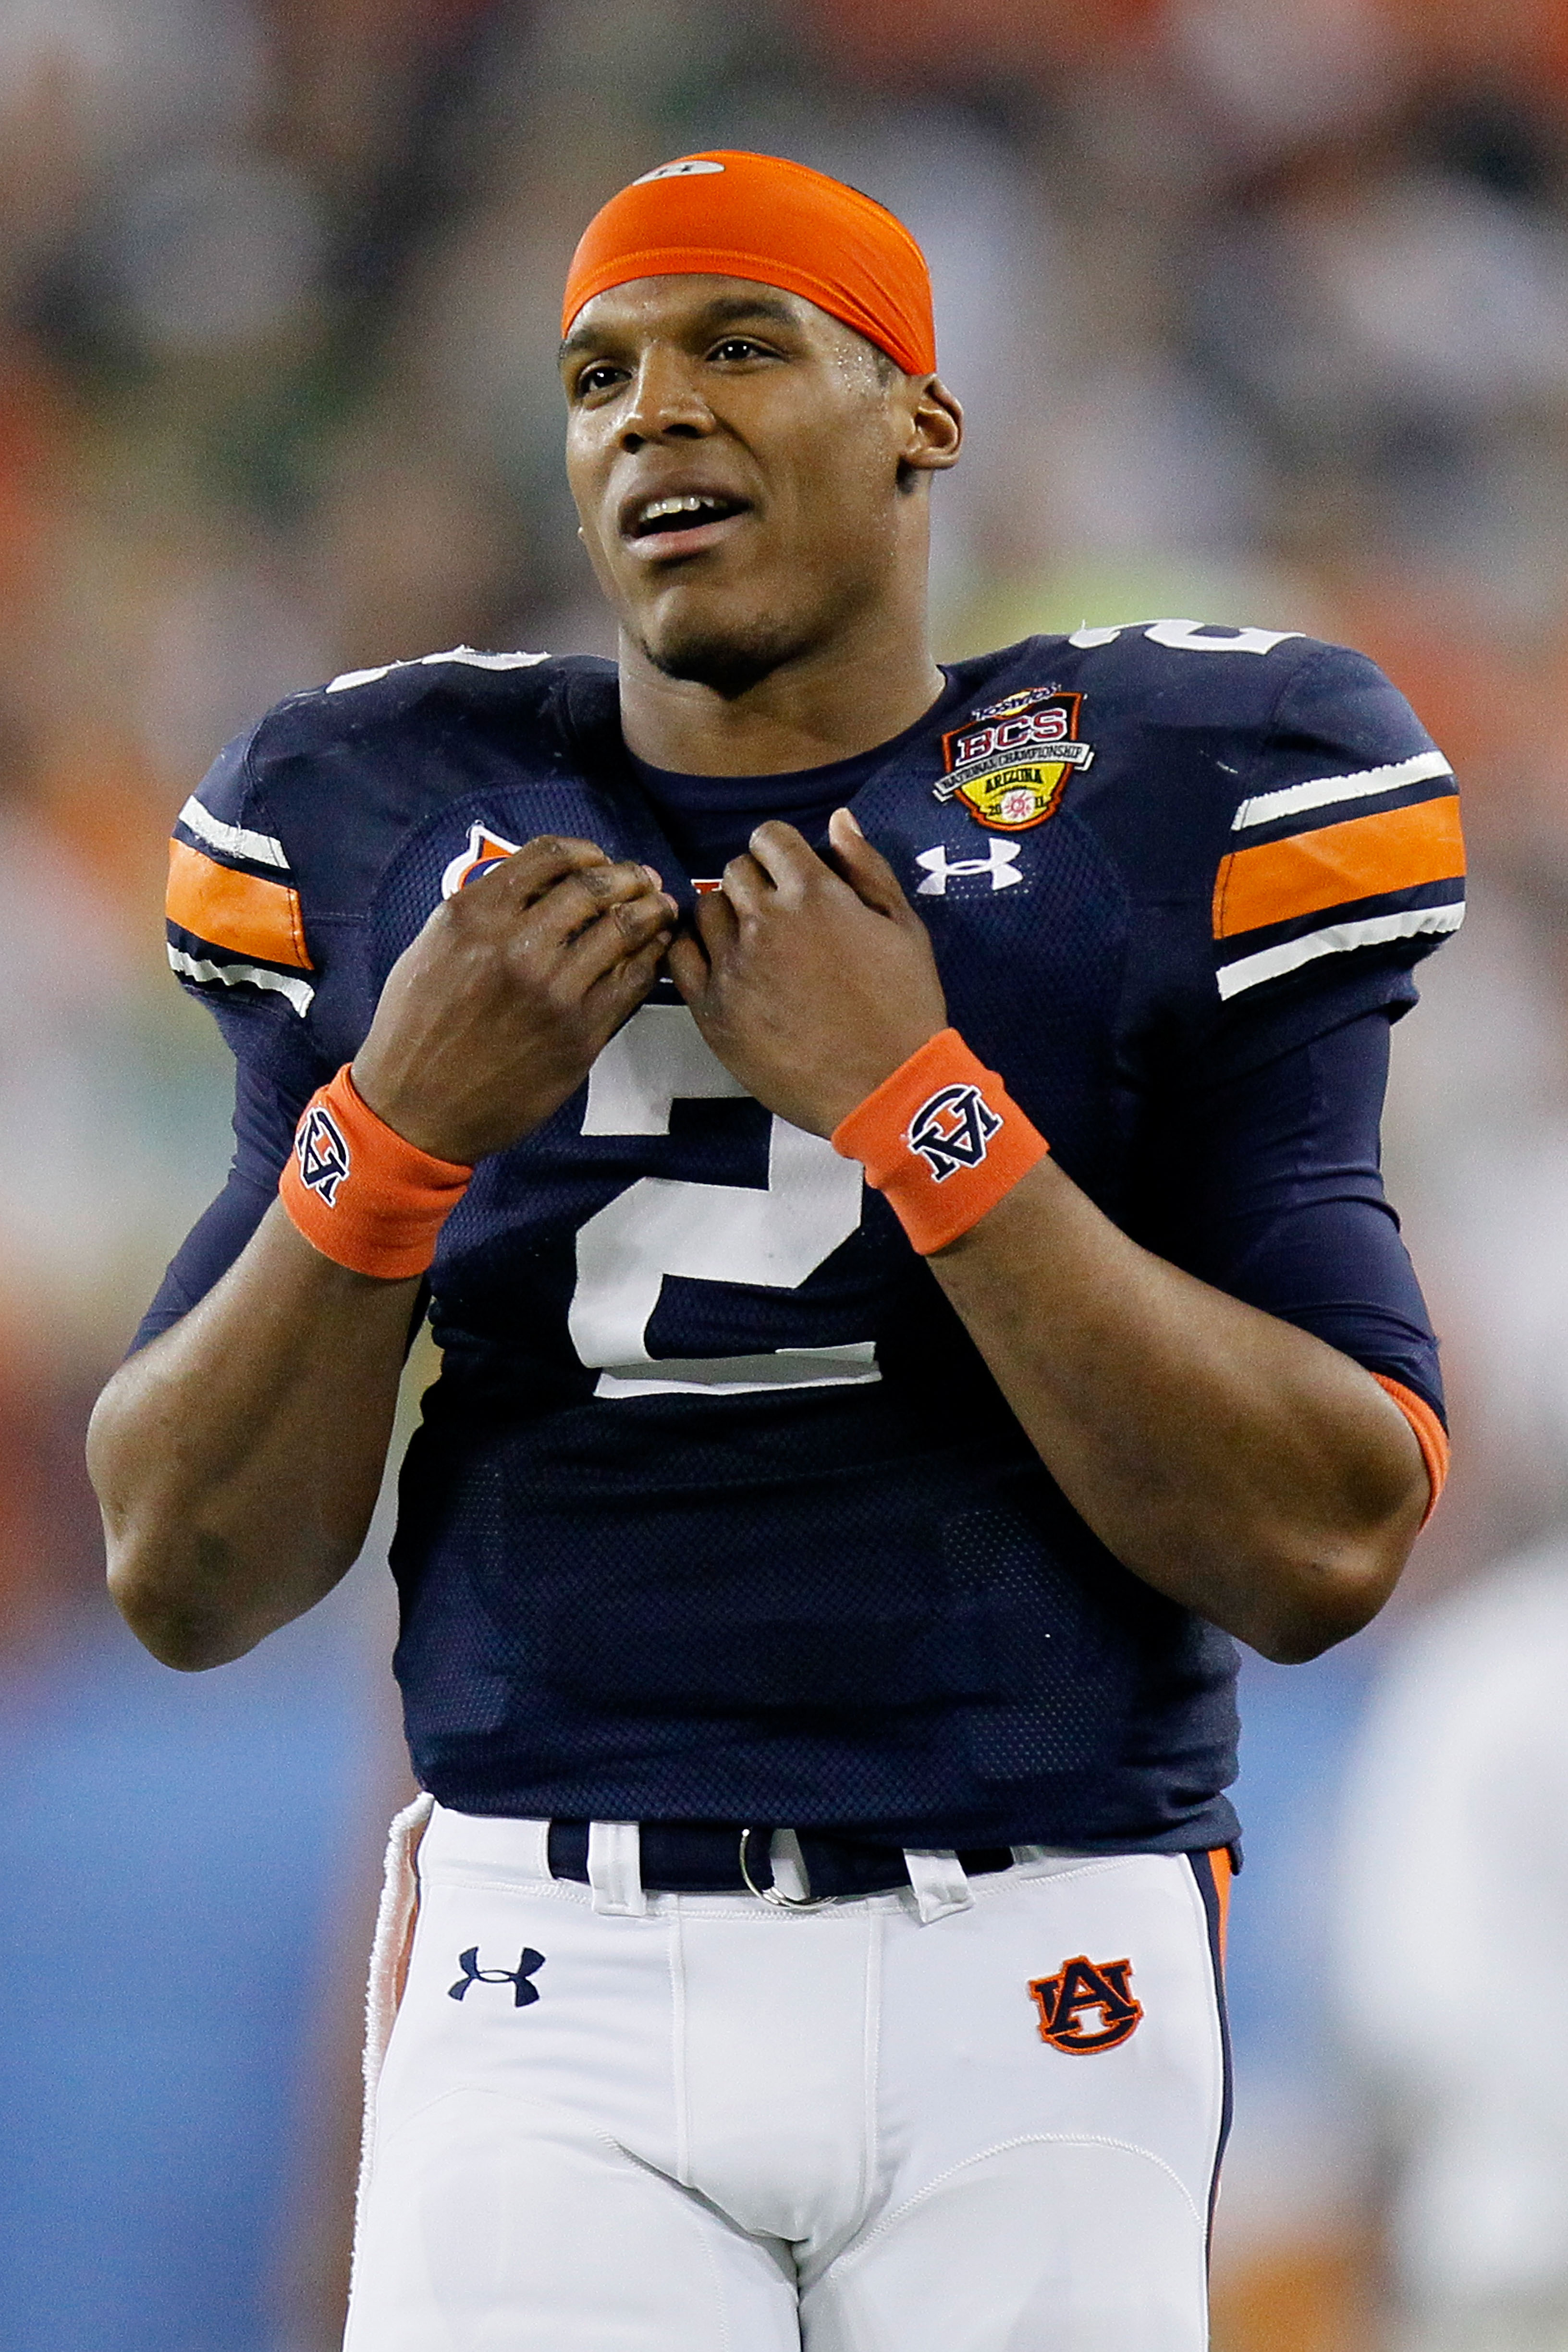 GLENDALE, AZ - JANUARY 10:  Quarterback Cameron Newton #2 of the Auburn Tigers looks on from the sideline in the first quarter against the Oregon Ducks during the Tostitos BCS National Championship Game at University of Phoenix Stadium on January 10, 2011